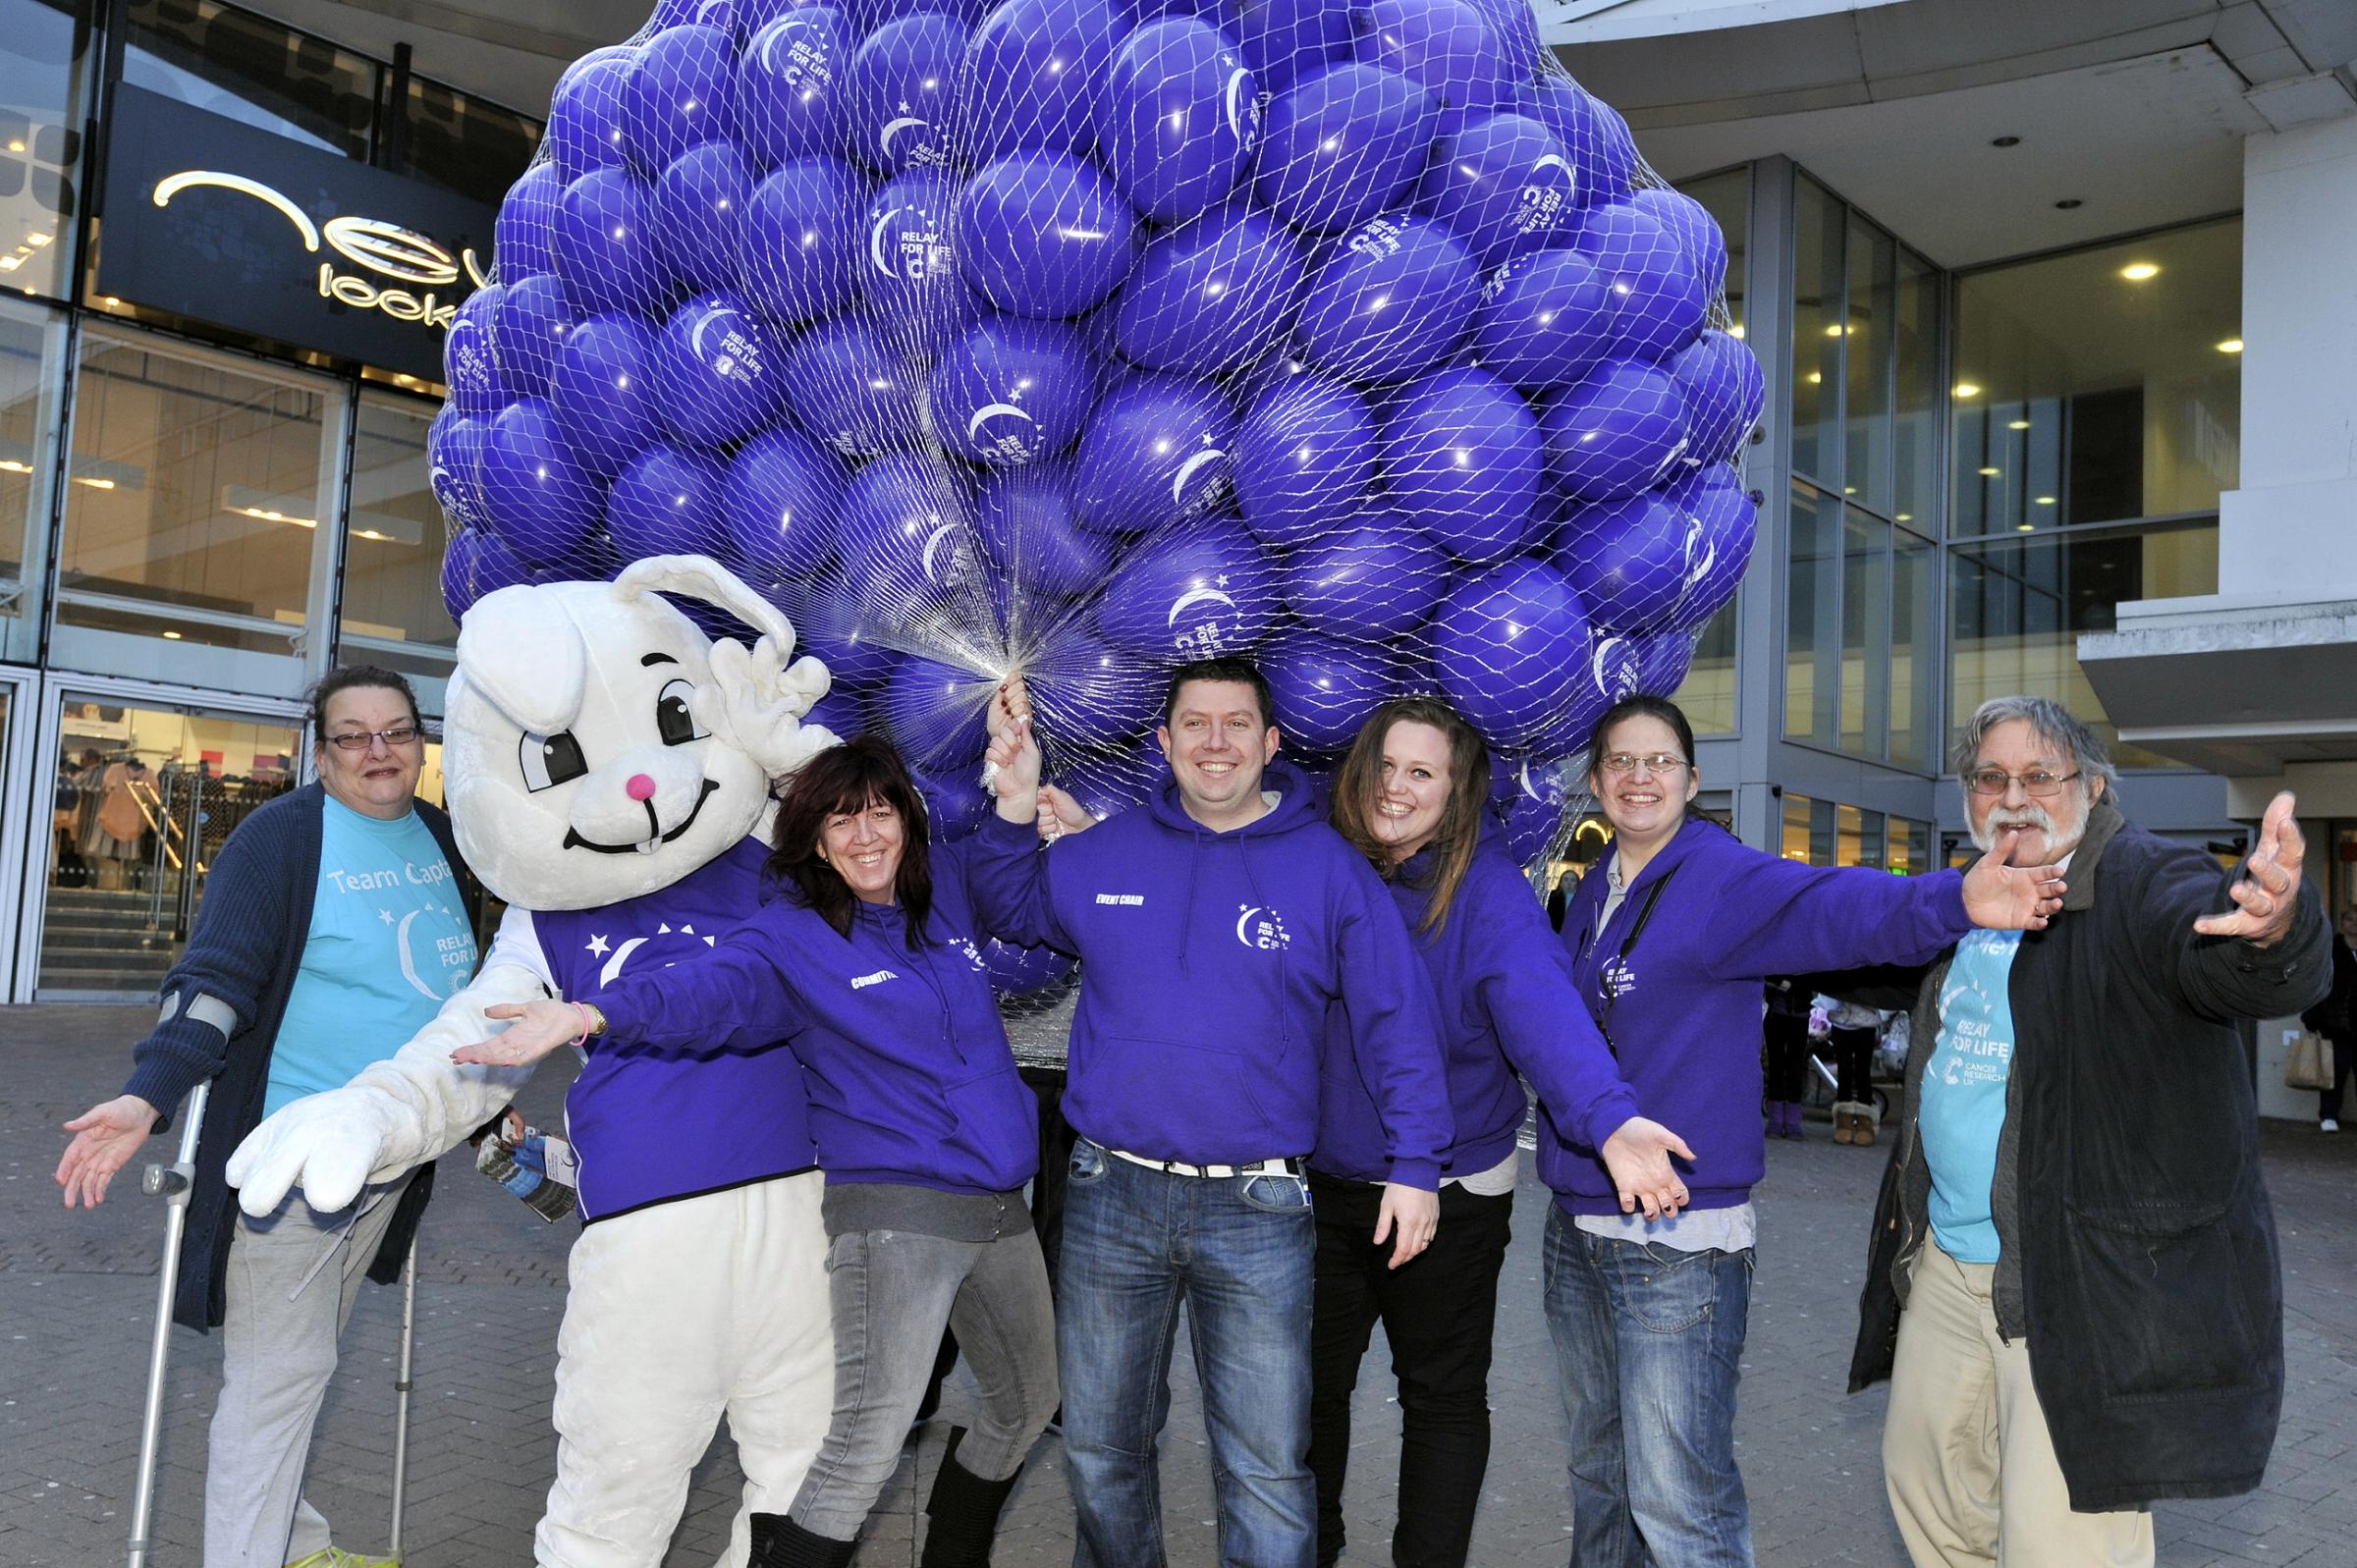 Southend Relay for Life: Balloons released to mark the launch of the 2014 event